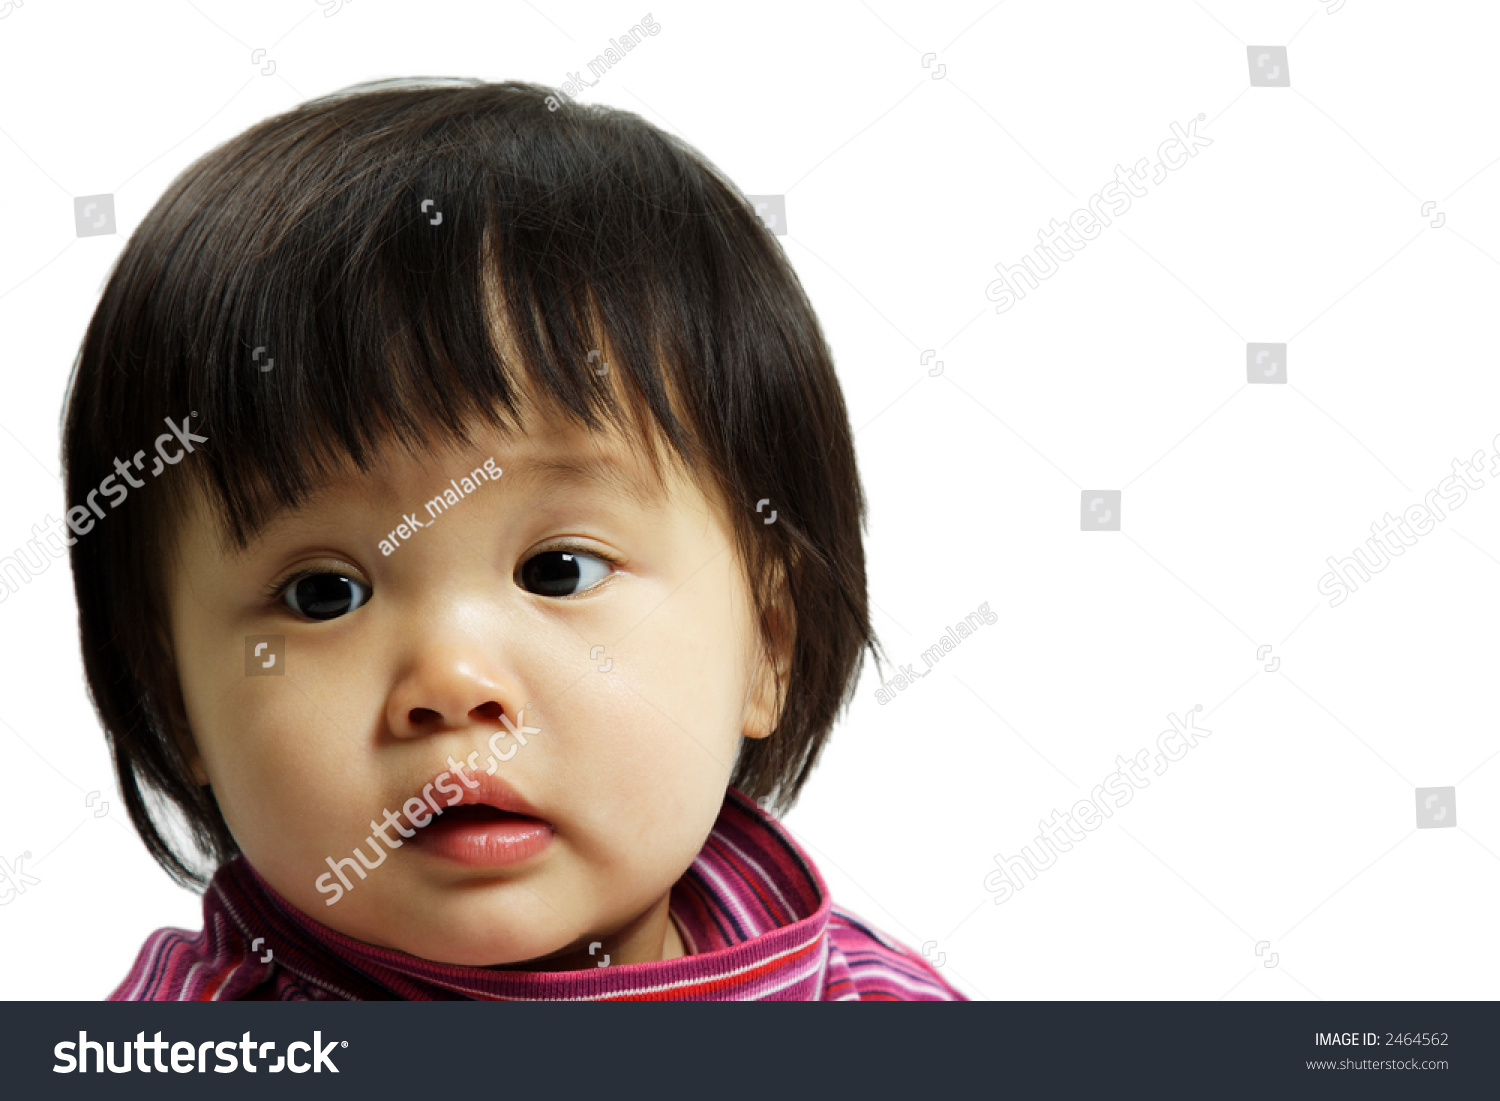 portrait cute baby girl posing isolated stock photo (download now